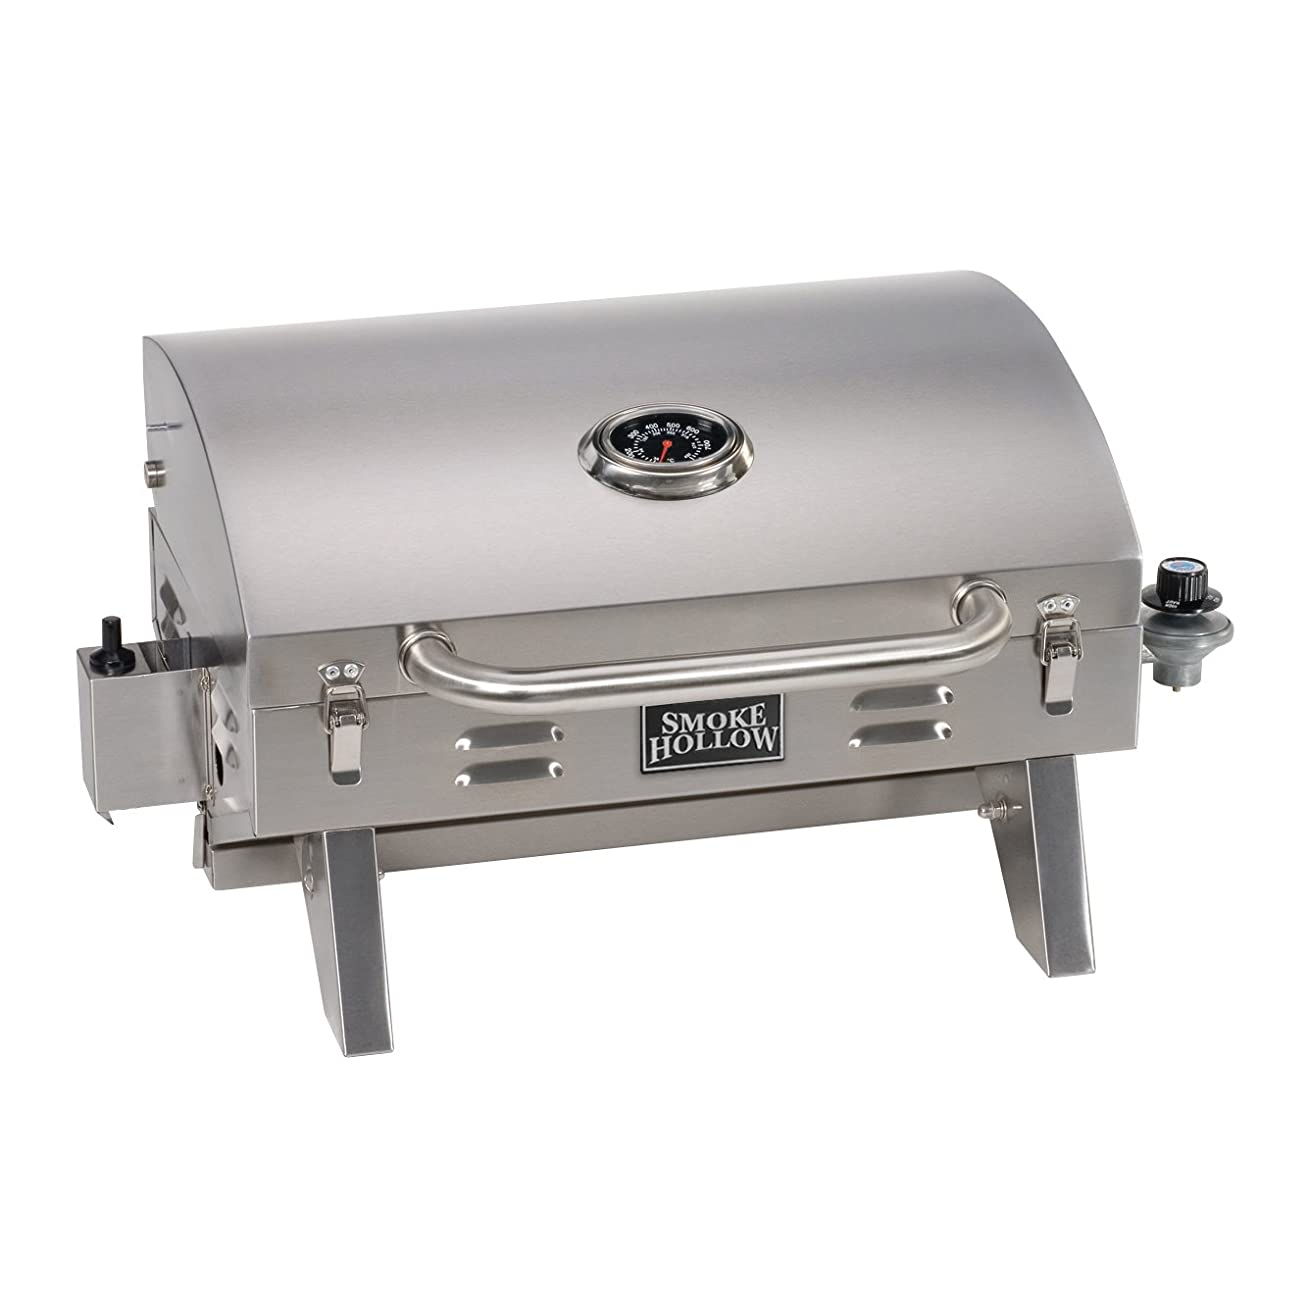 Smoke Hollow 205 Stainless Steel TableTop Propane Gas Grill, Perfect for tailgating,camping or any outdoor event upklxqrjvdjh9